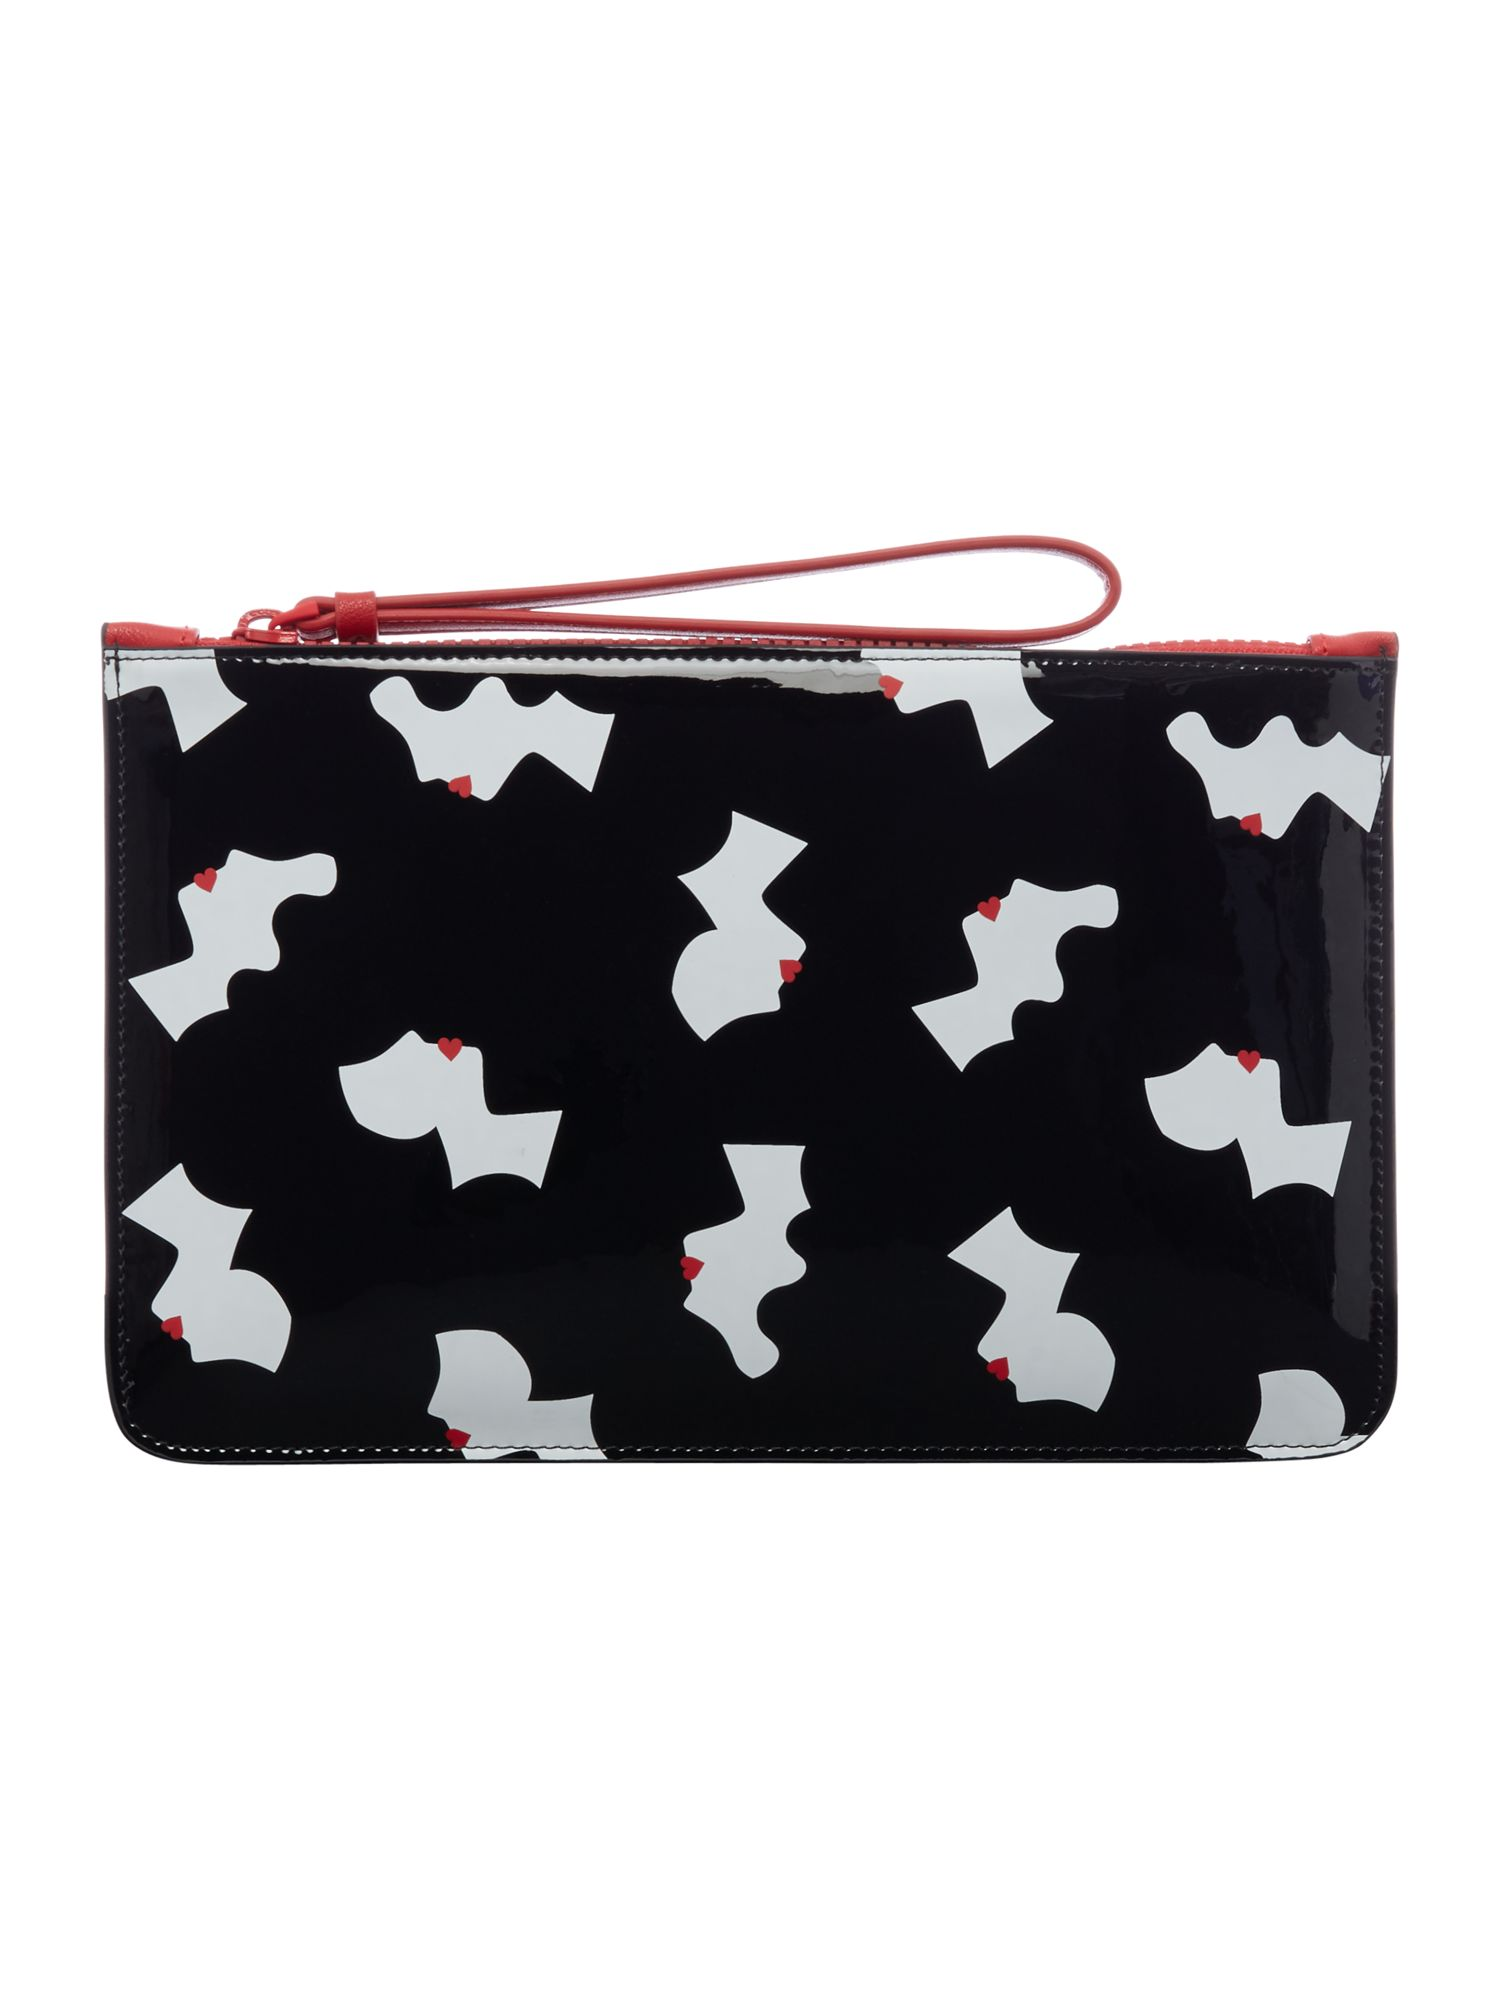 Lulu Guinness Kissing cameo top zip pouch, Black